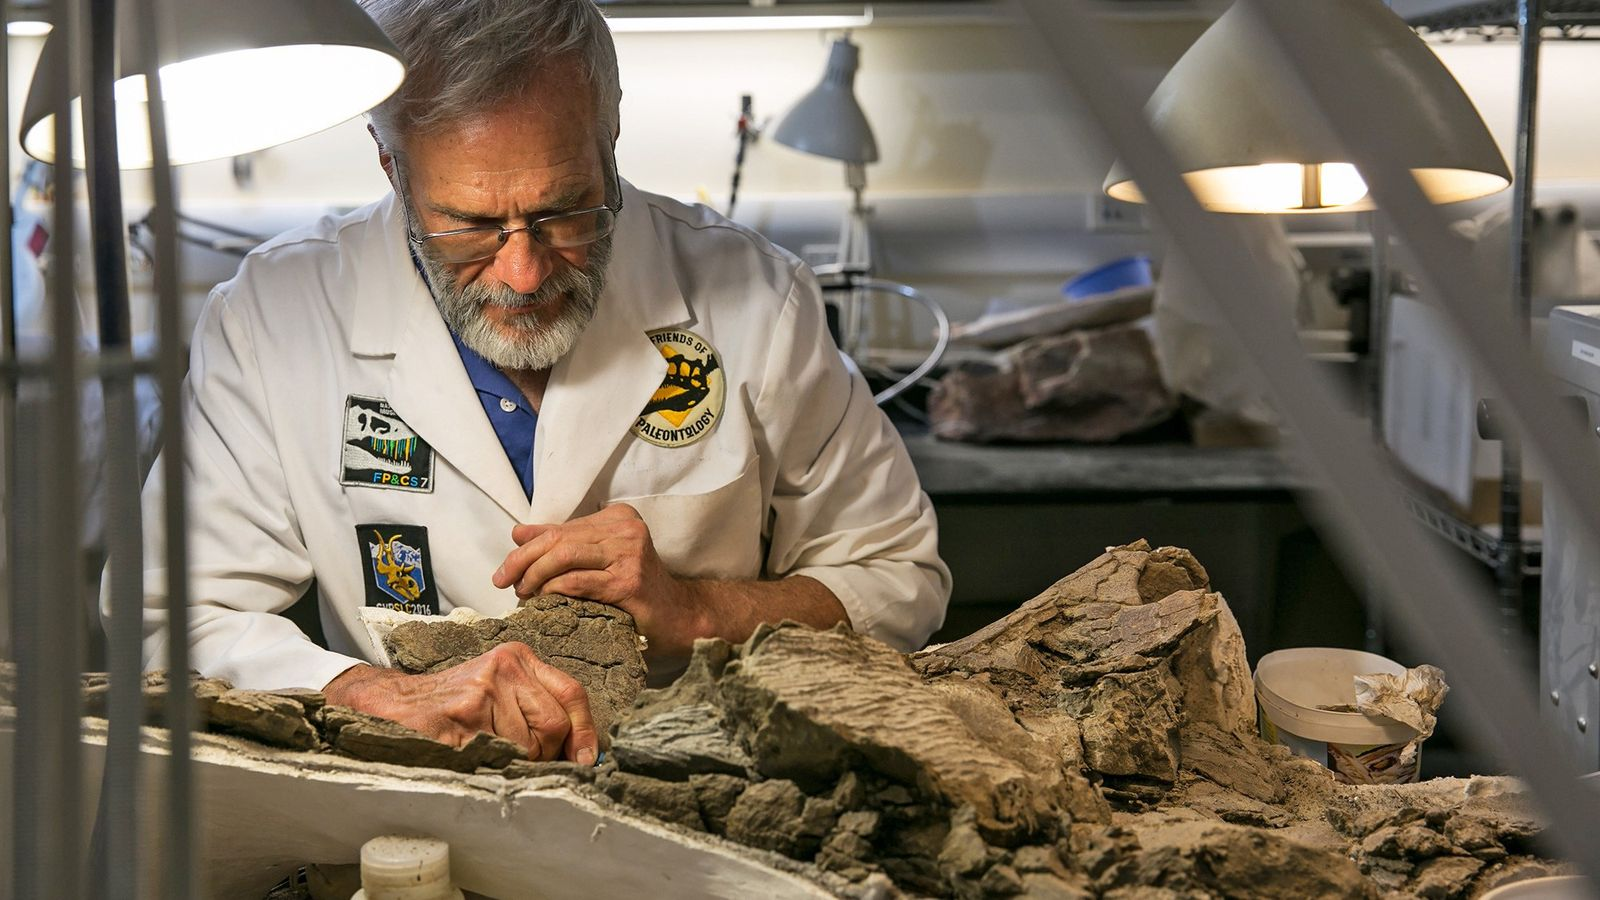 Randy Johnson, a paleo volunteer at the Natural History Museum of Utah, carefully prepares a fossil ...